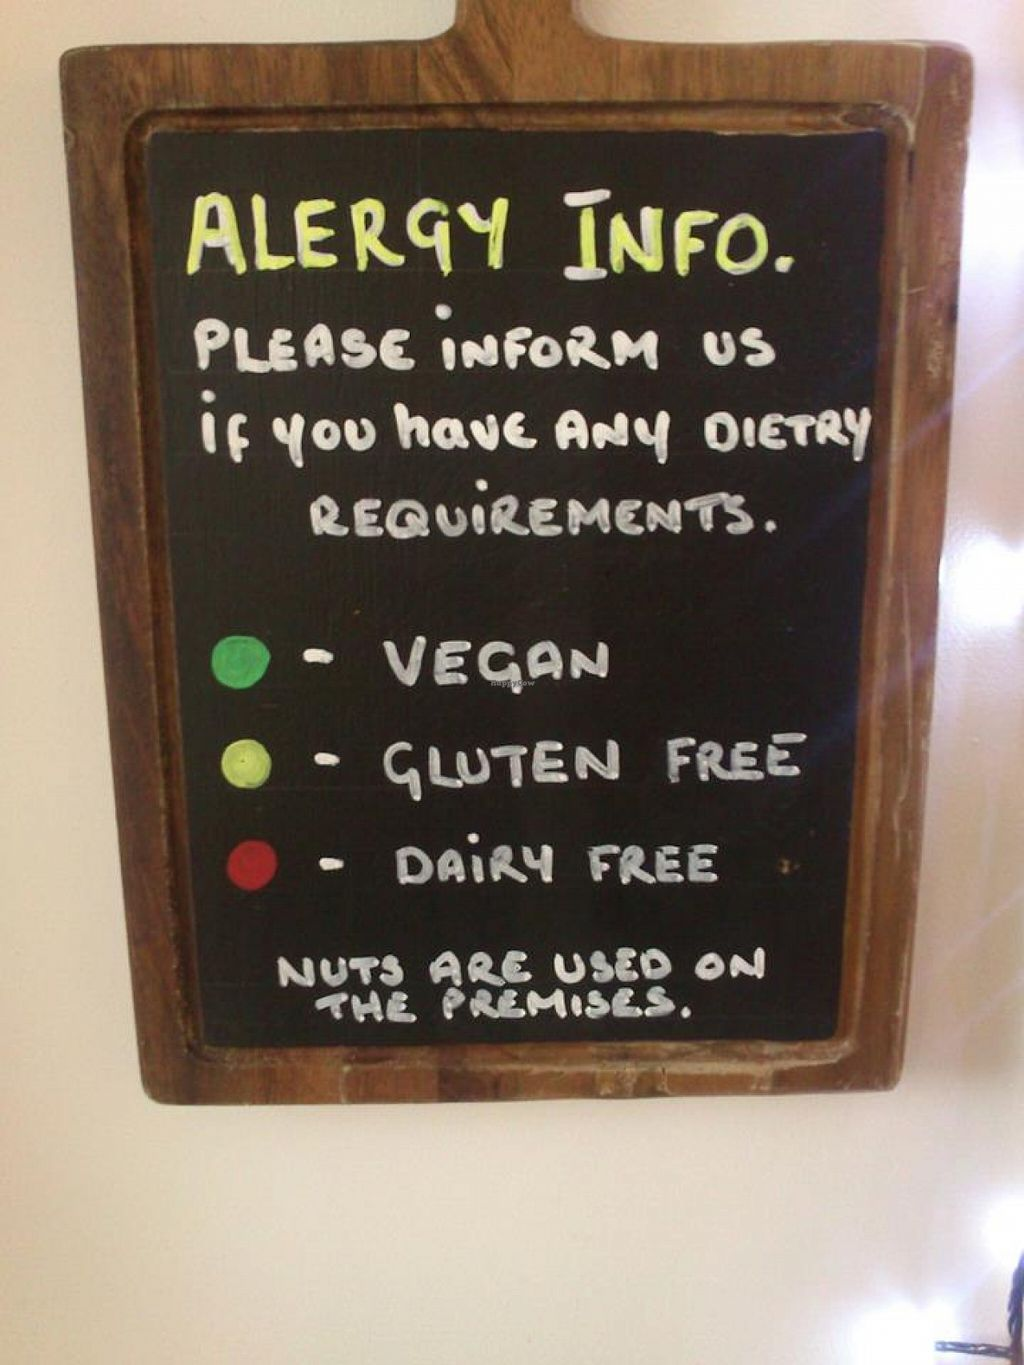 """Photo of The HiVe Cafe  by <a href=""""/members/profile/fizz"""">fizz</a> <br/>The allergen labelling system for the menu at The HiVe Cafe <br/> September 2, 2015  - <a href='/contact/abuse/image/55854/116167'>Report</a>"""